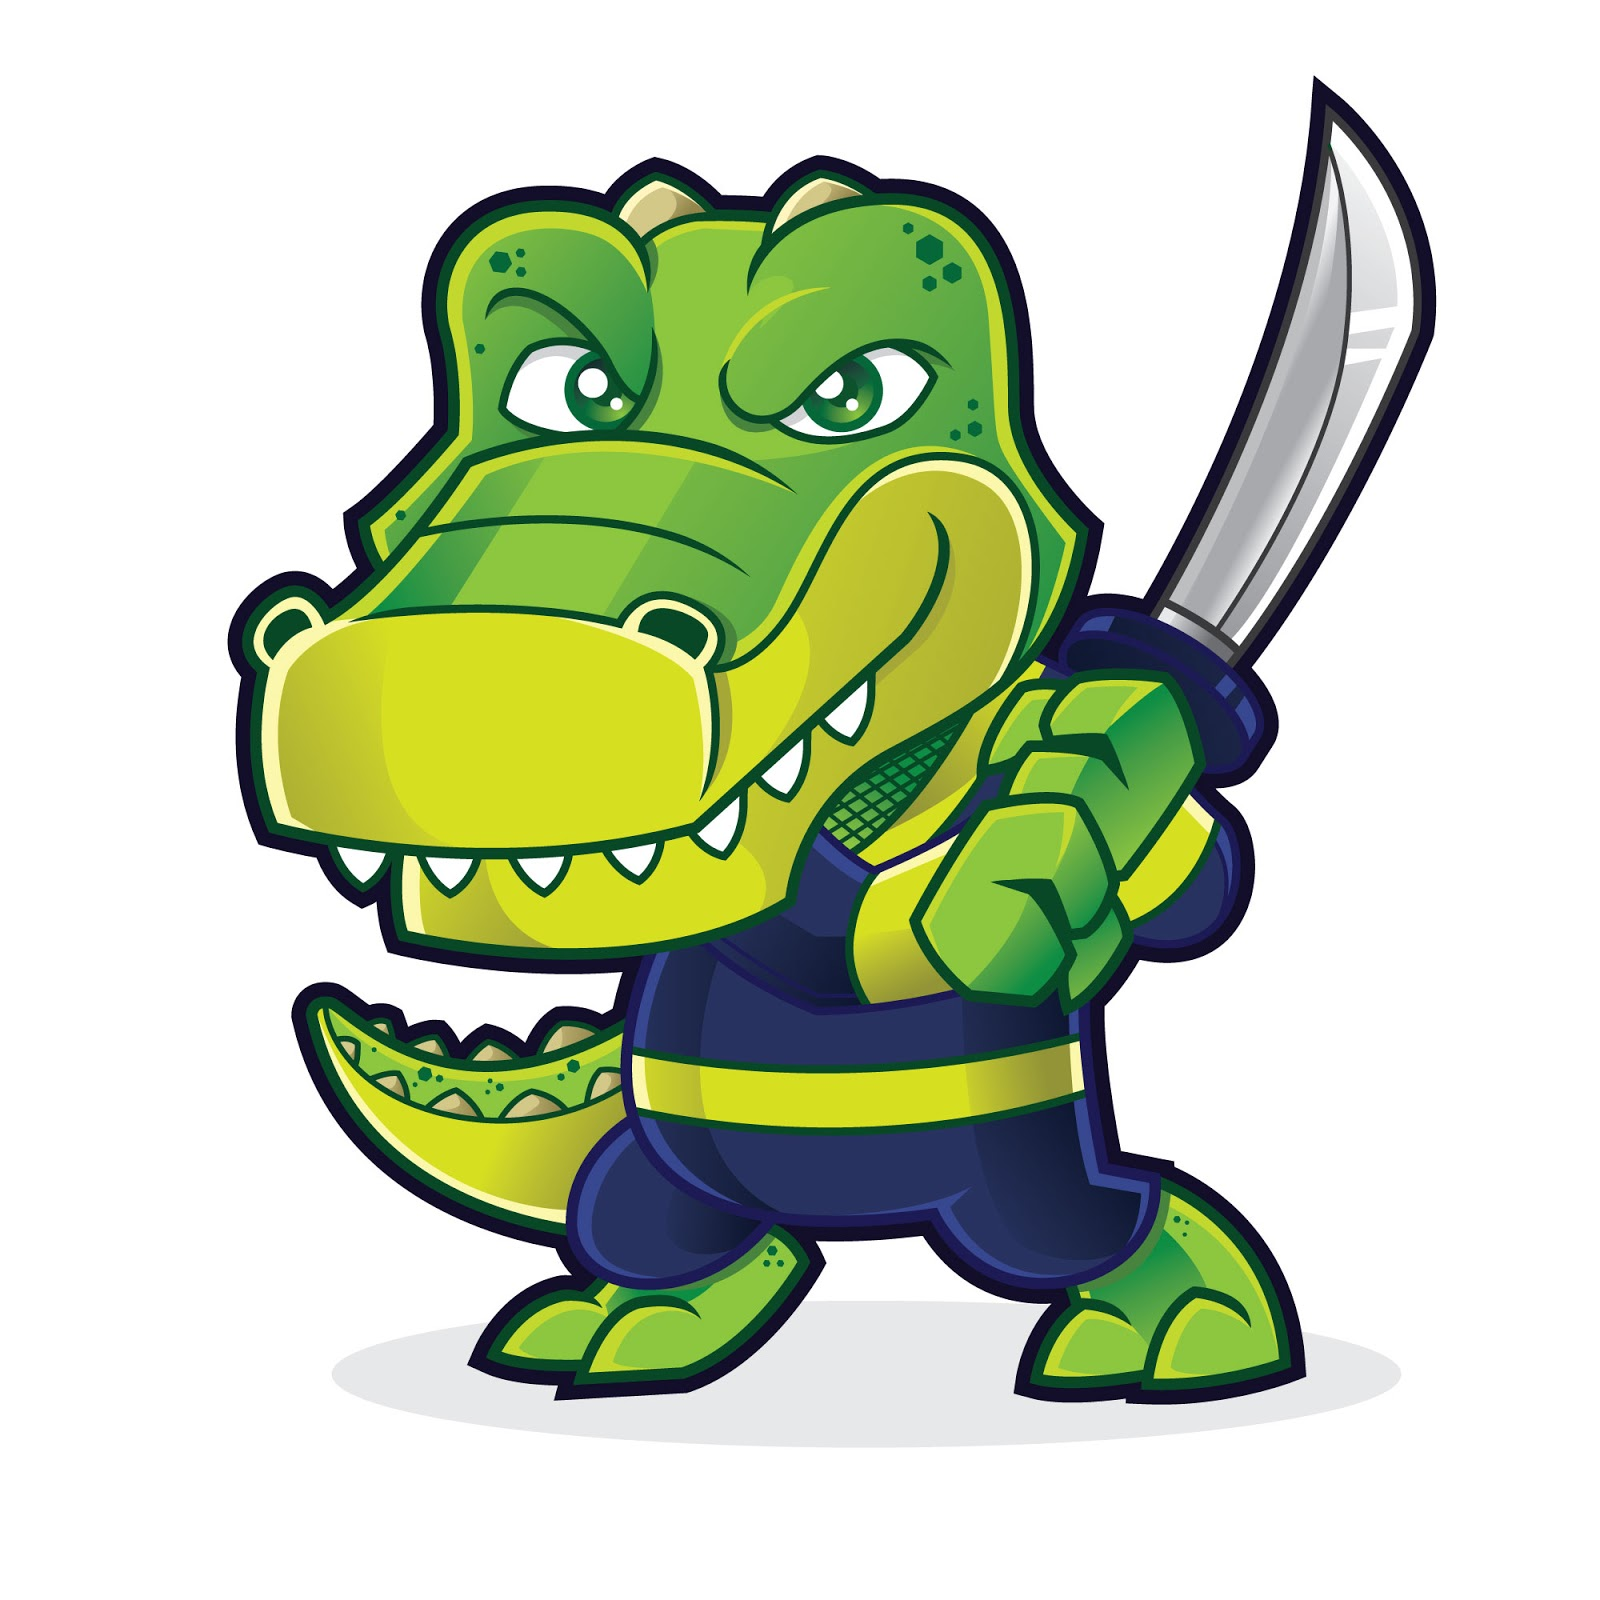 Gator Warrior Free Download Vector CDR, AI, EPS and PNG Formats